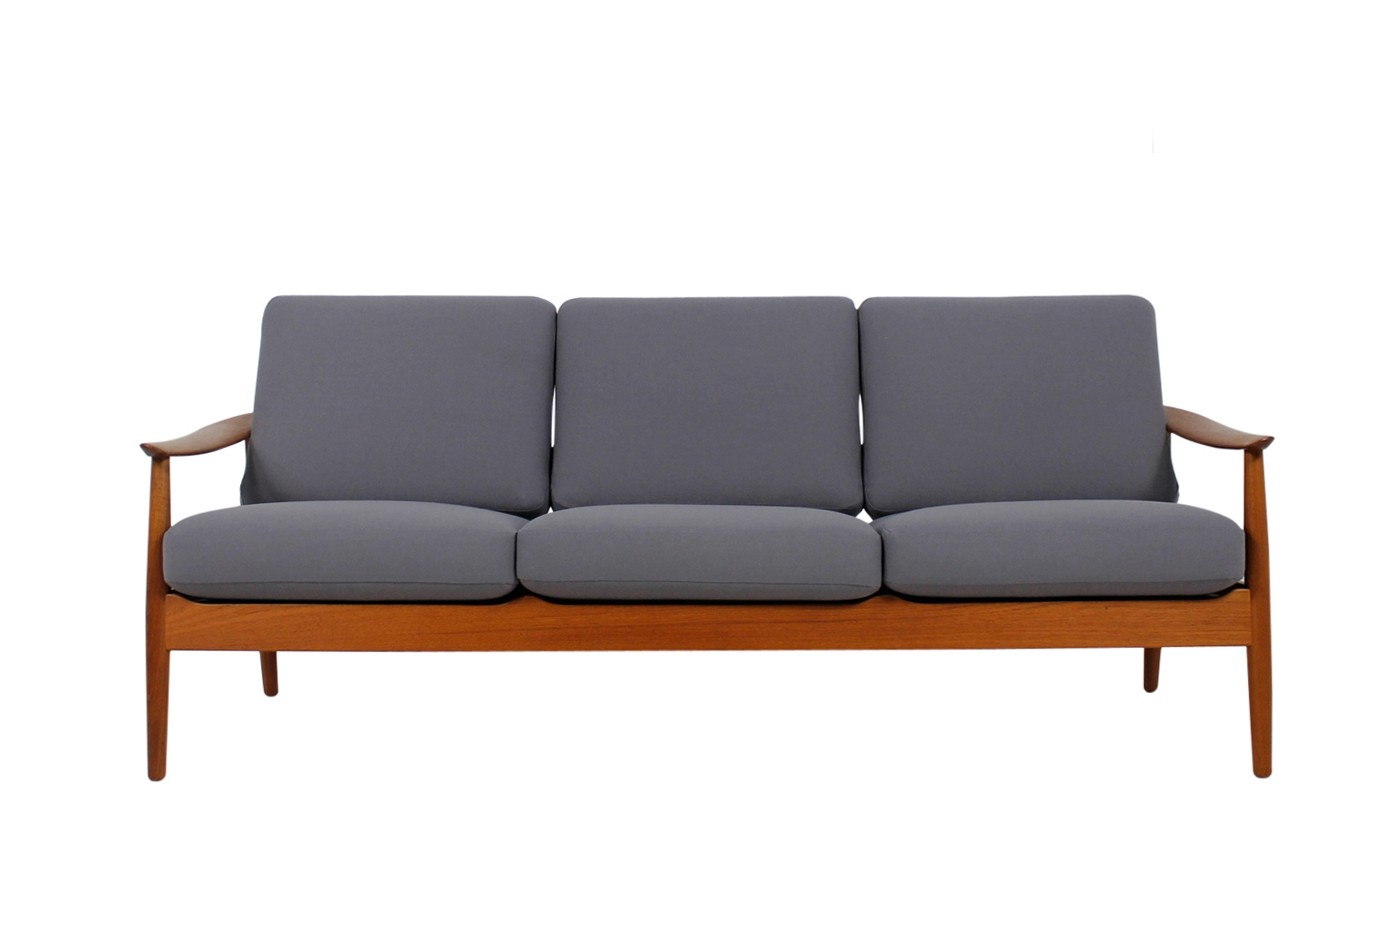 1960s arne vodder teak sofa danish modern design mid century objects. Black Bedroom Furniture Sets. Home Design Ideas